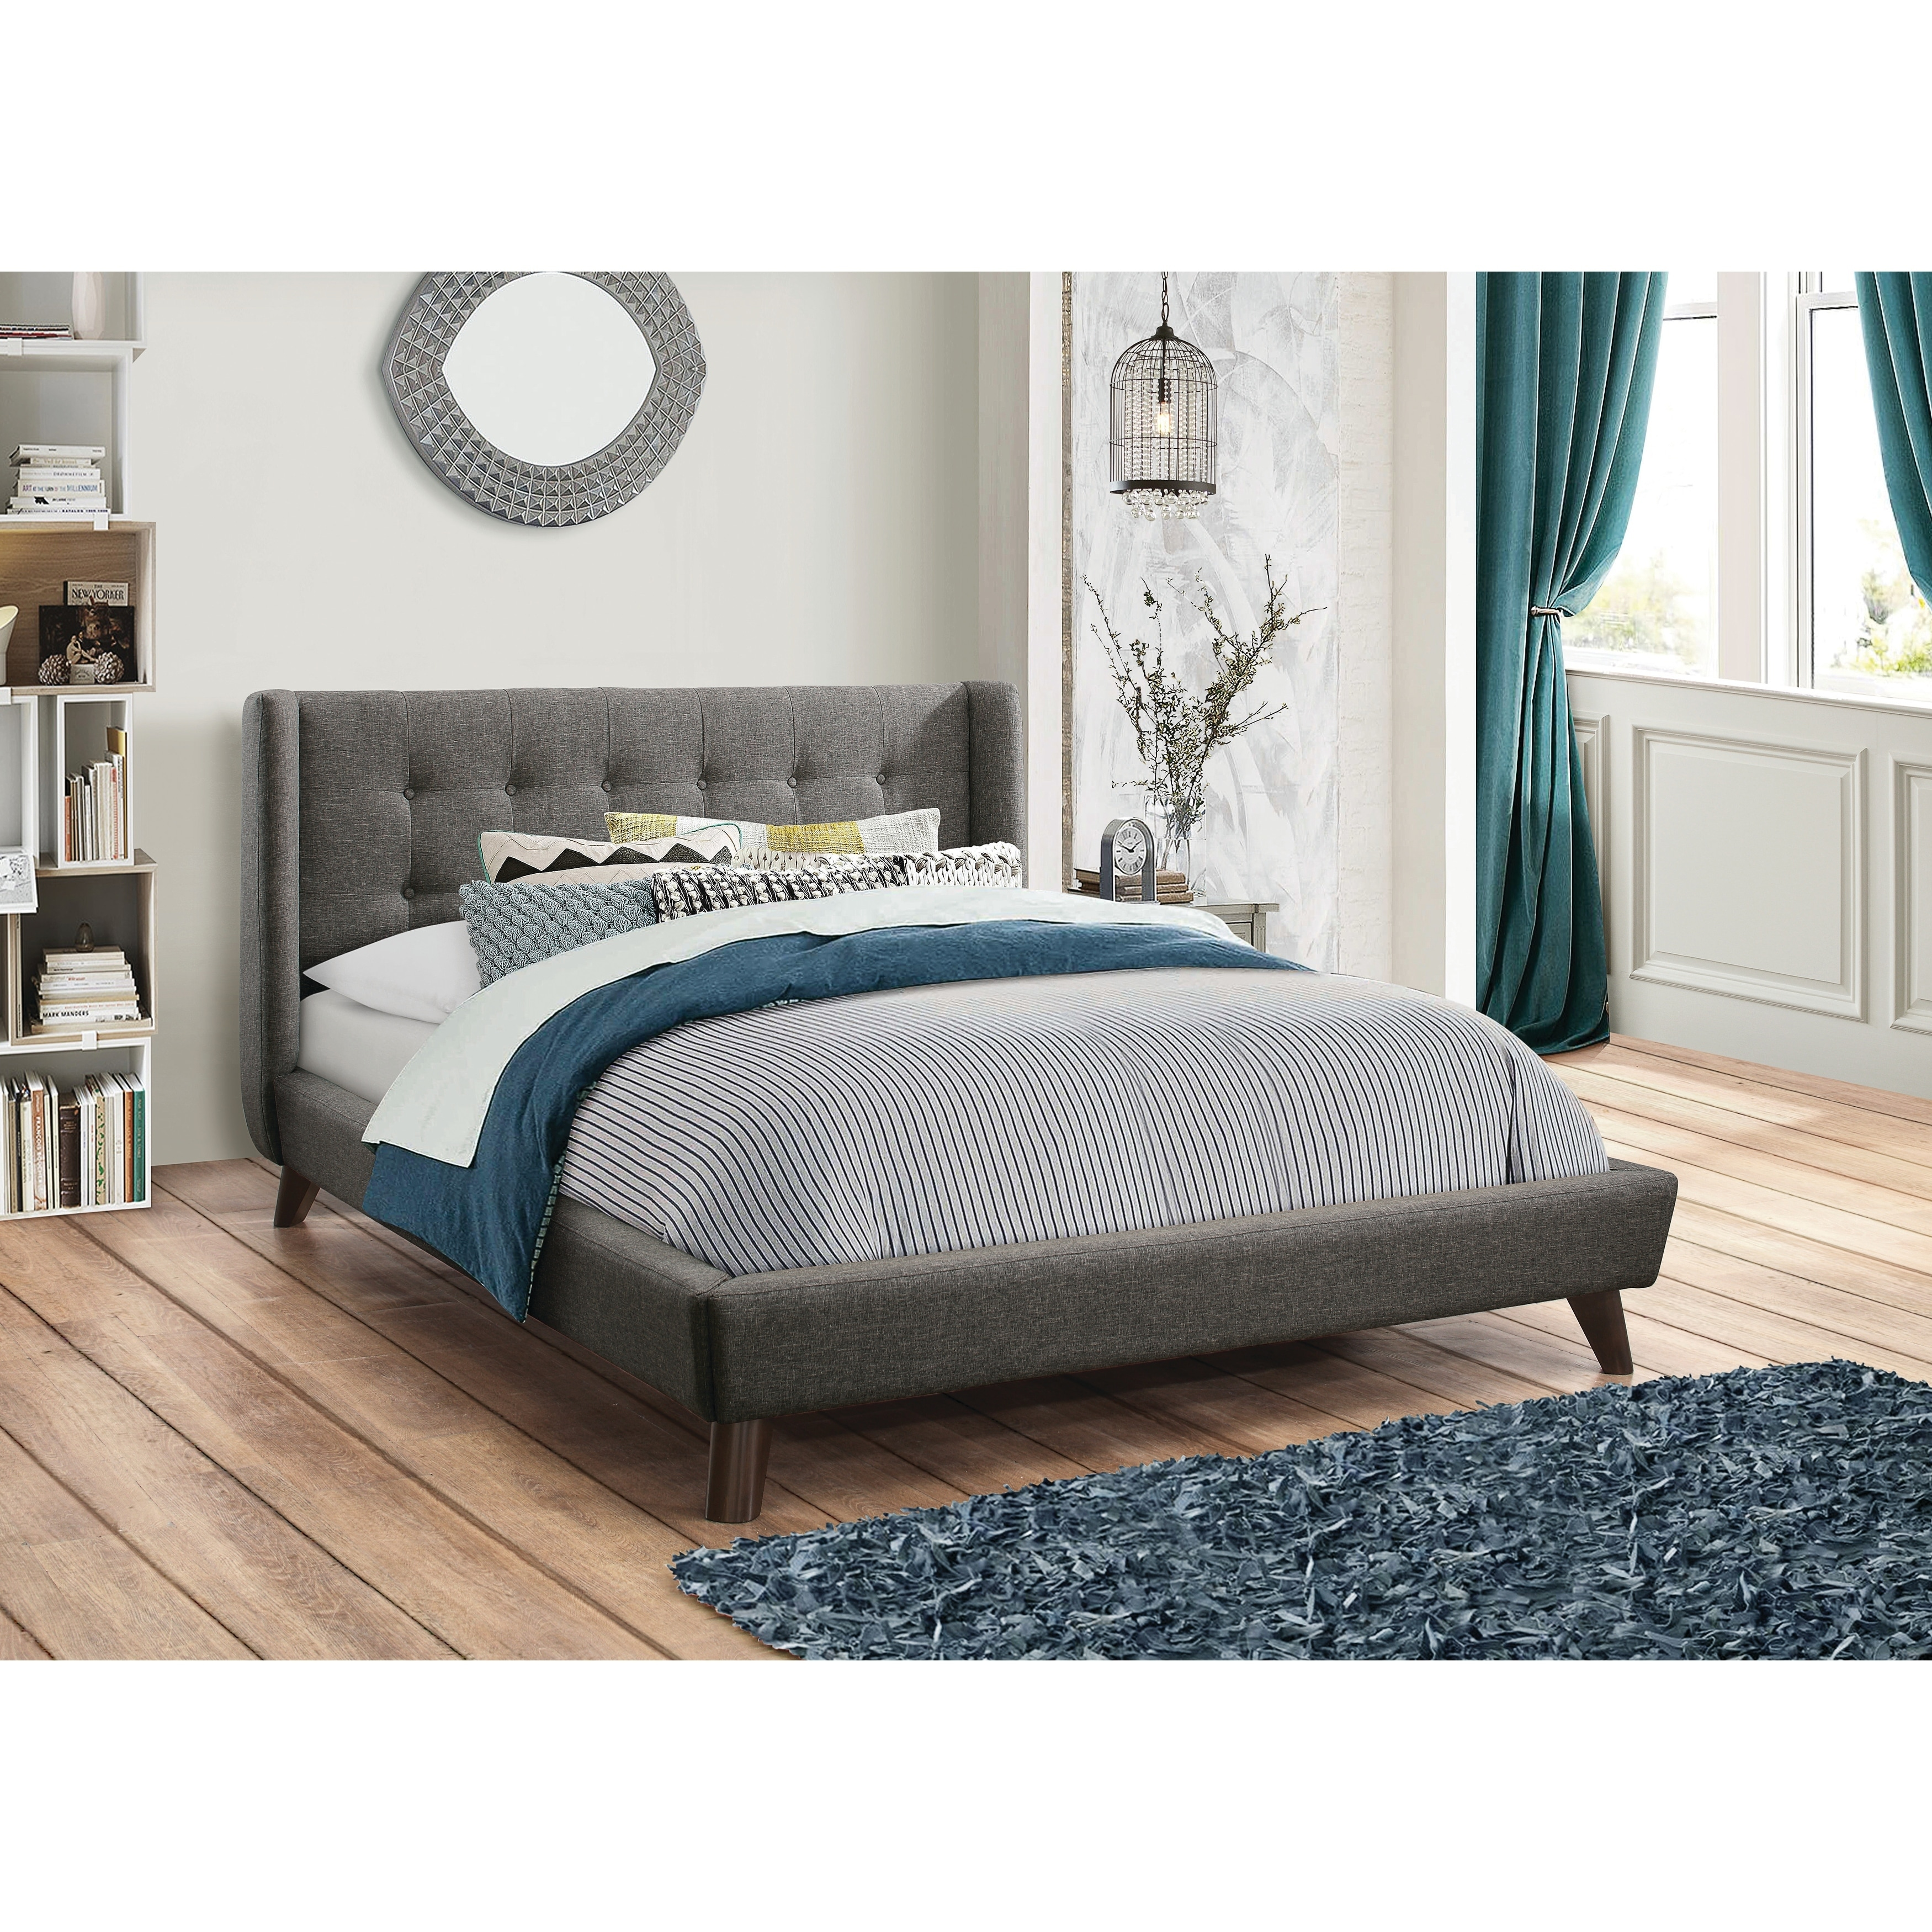 Carrington Grey Upholstered Bed Overstock 22043513